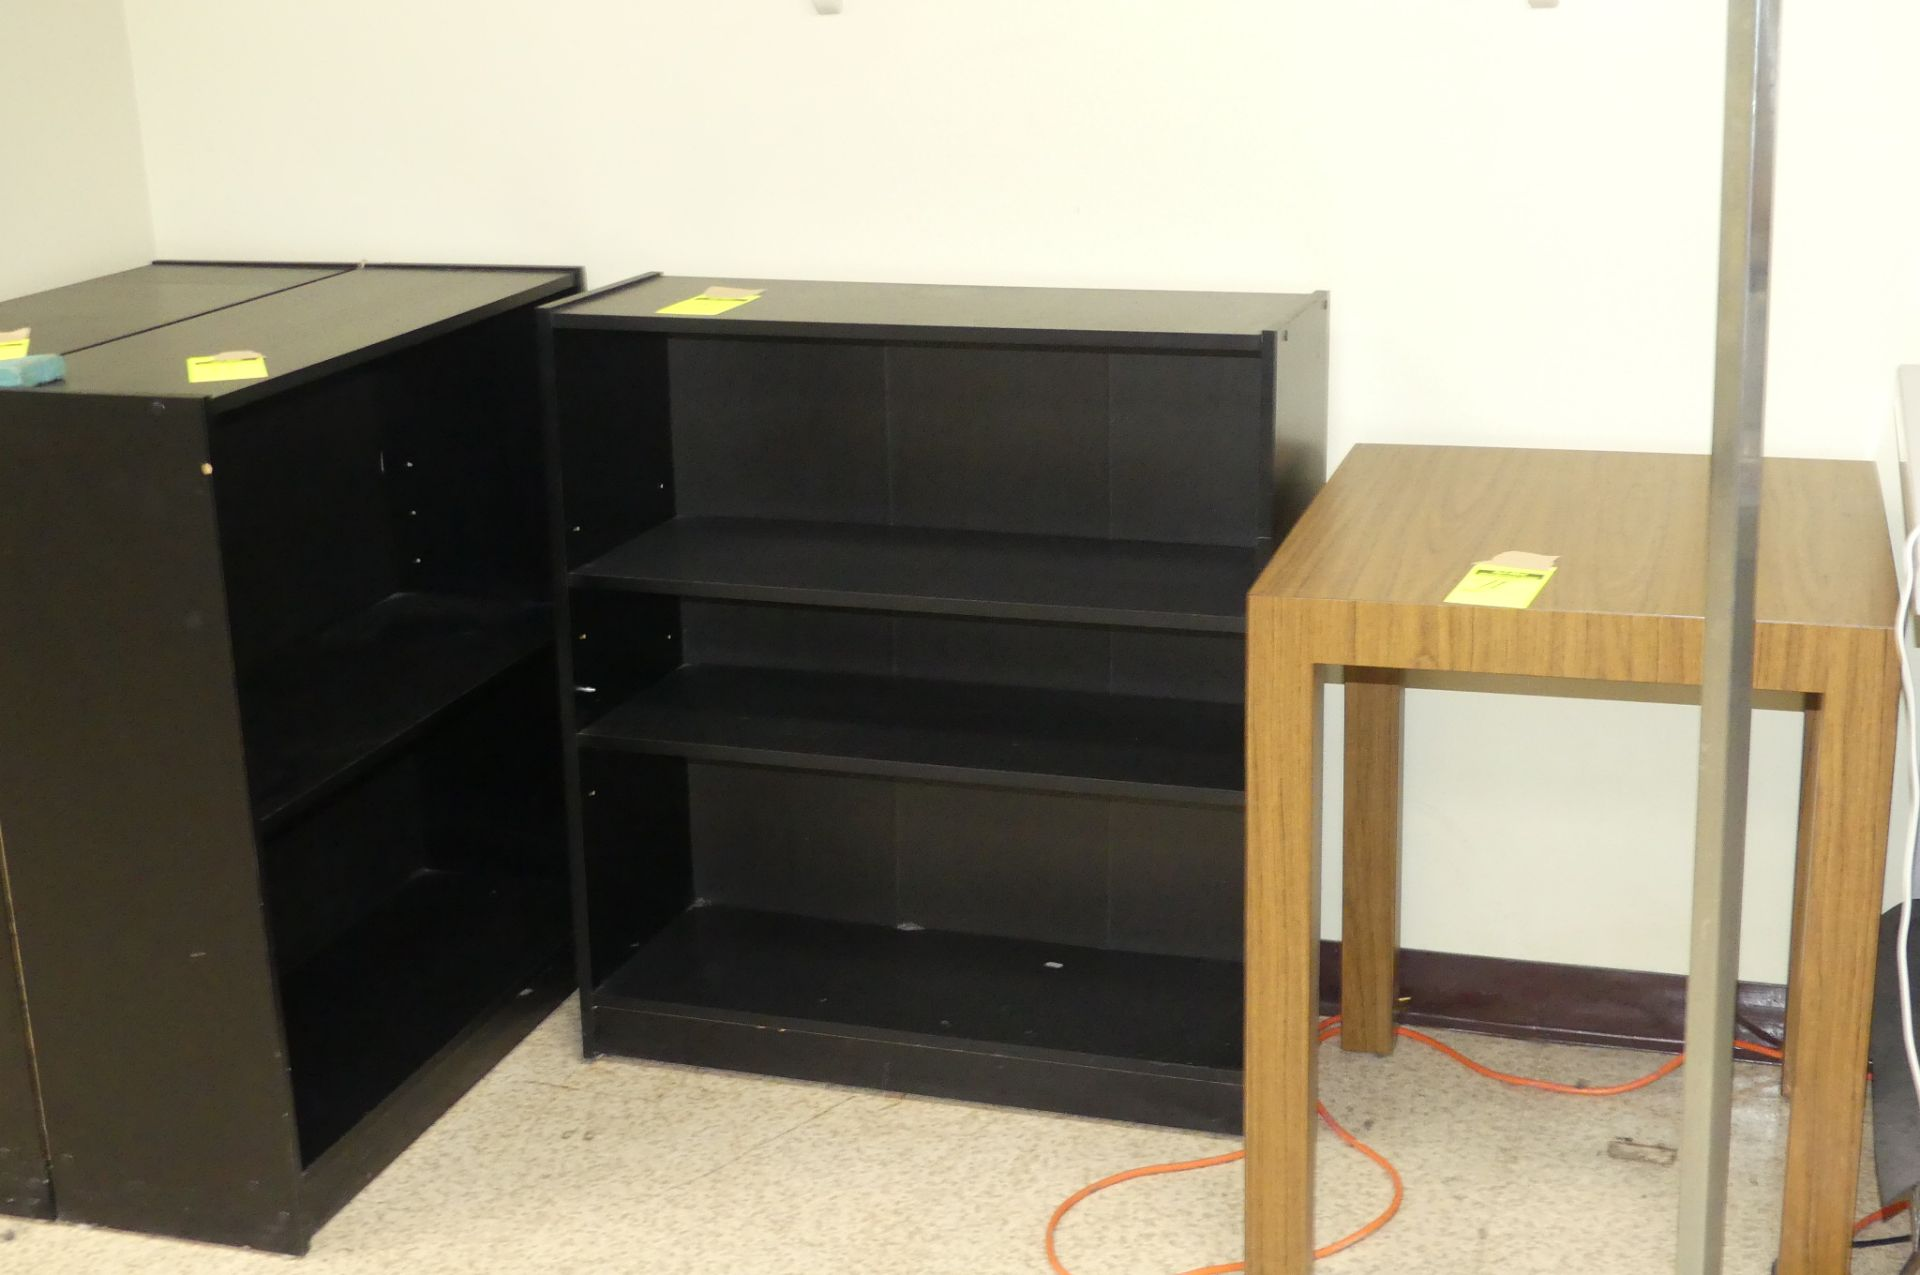 9-TABLES, 5-CHAIRS, 3-BOOK SHELVES - Image 2 of 9